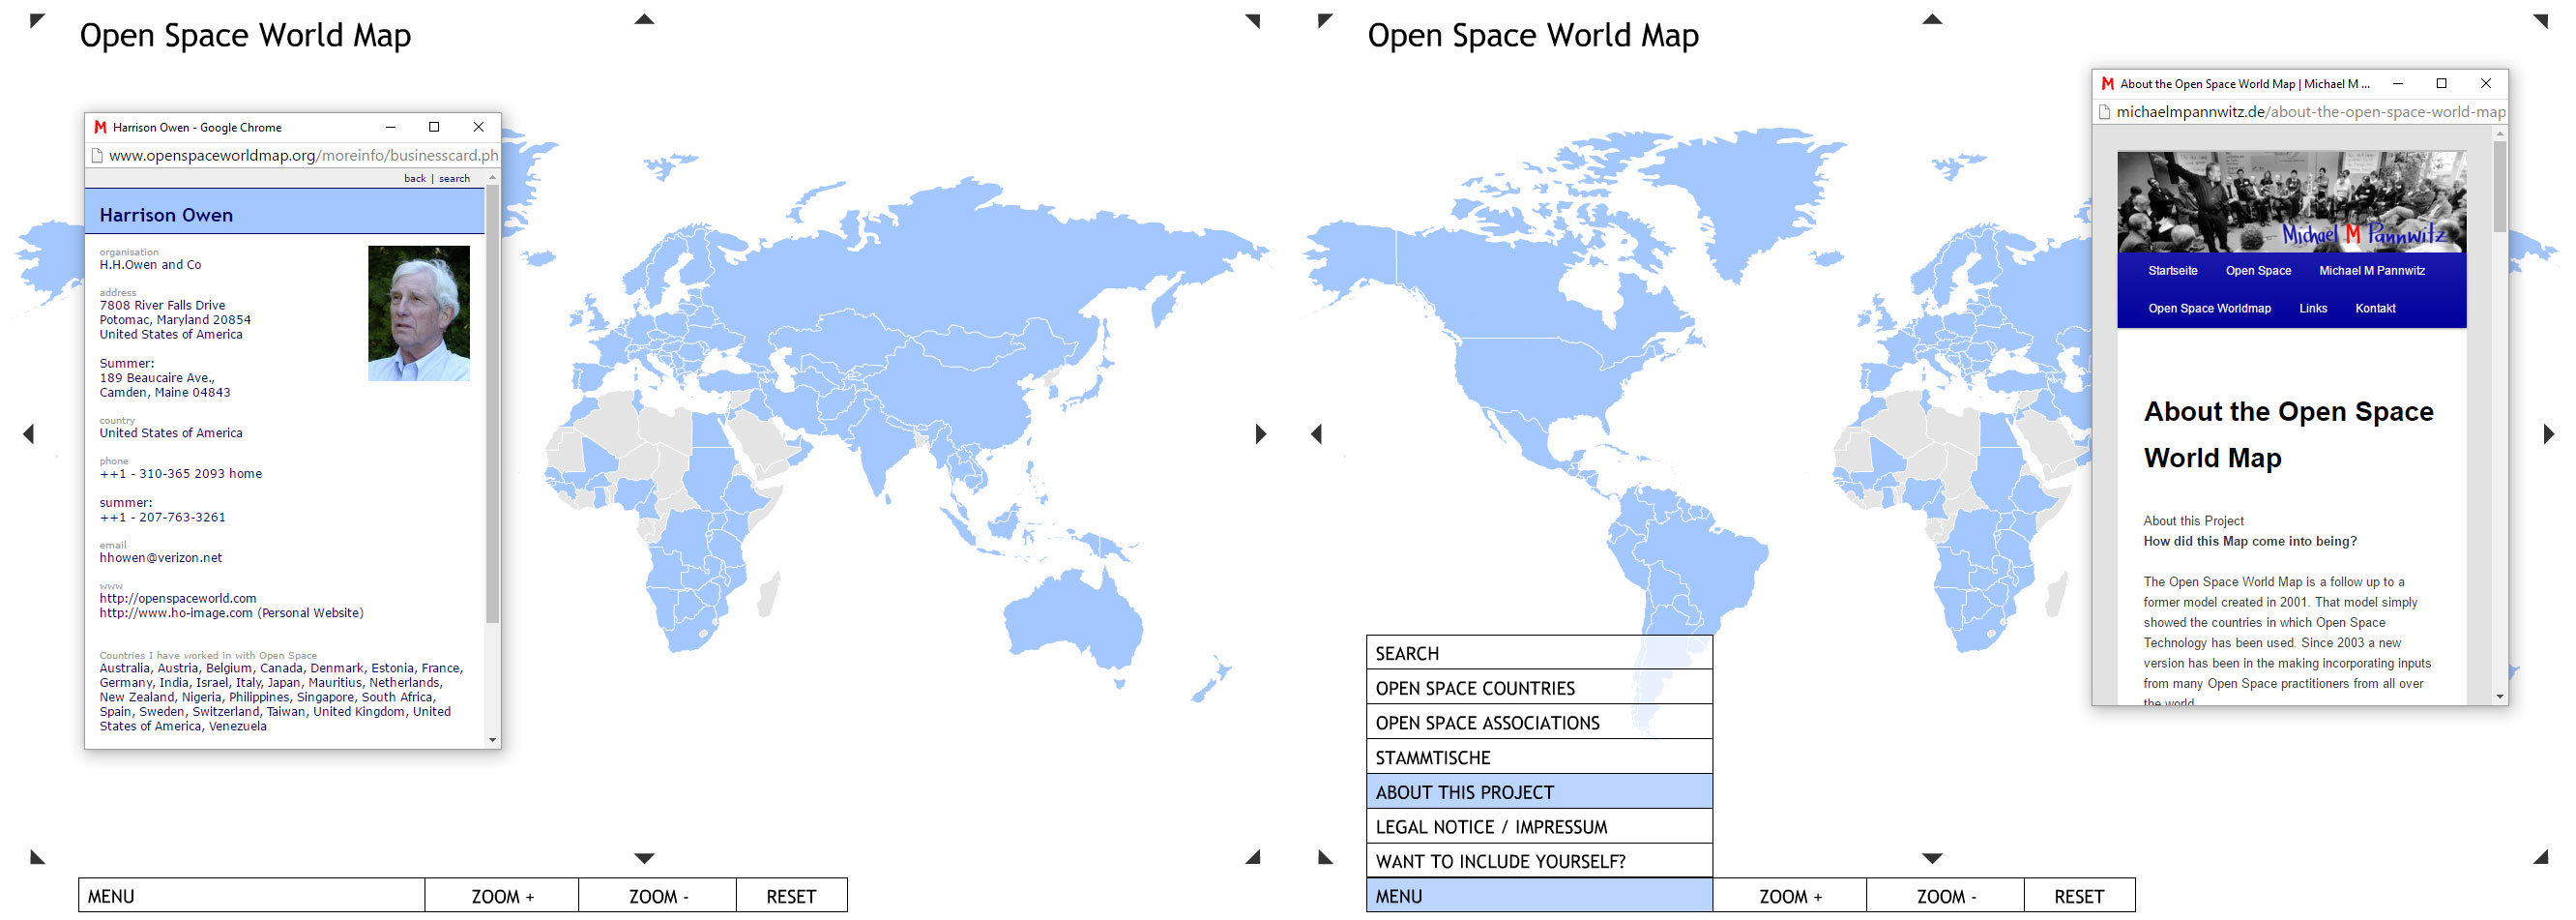 About the world map in 2015 the map comprised more than 400 open space workers in over 140 countries in addition to their contact details links to more than 200 web sites gumiabroncs Image collections